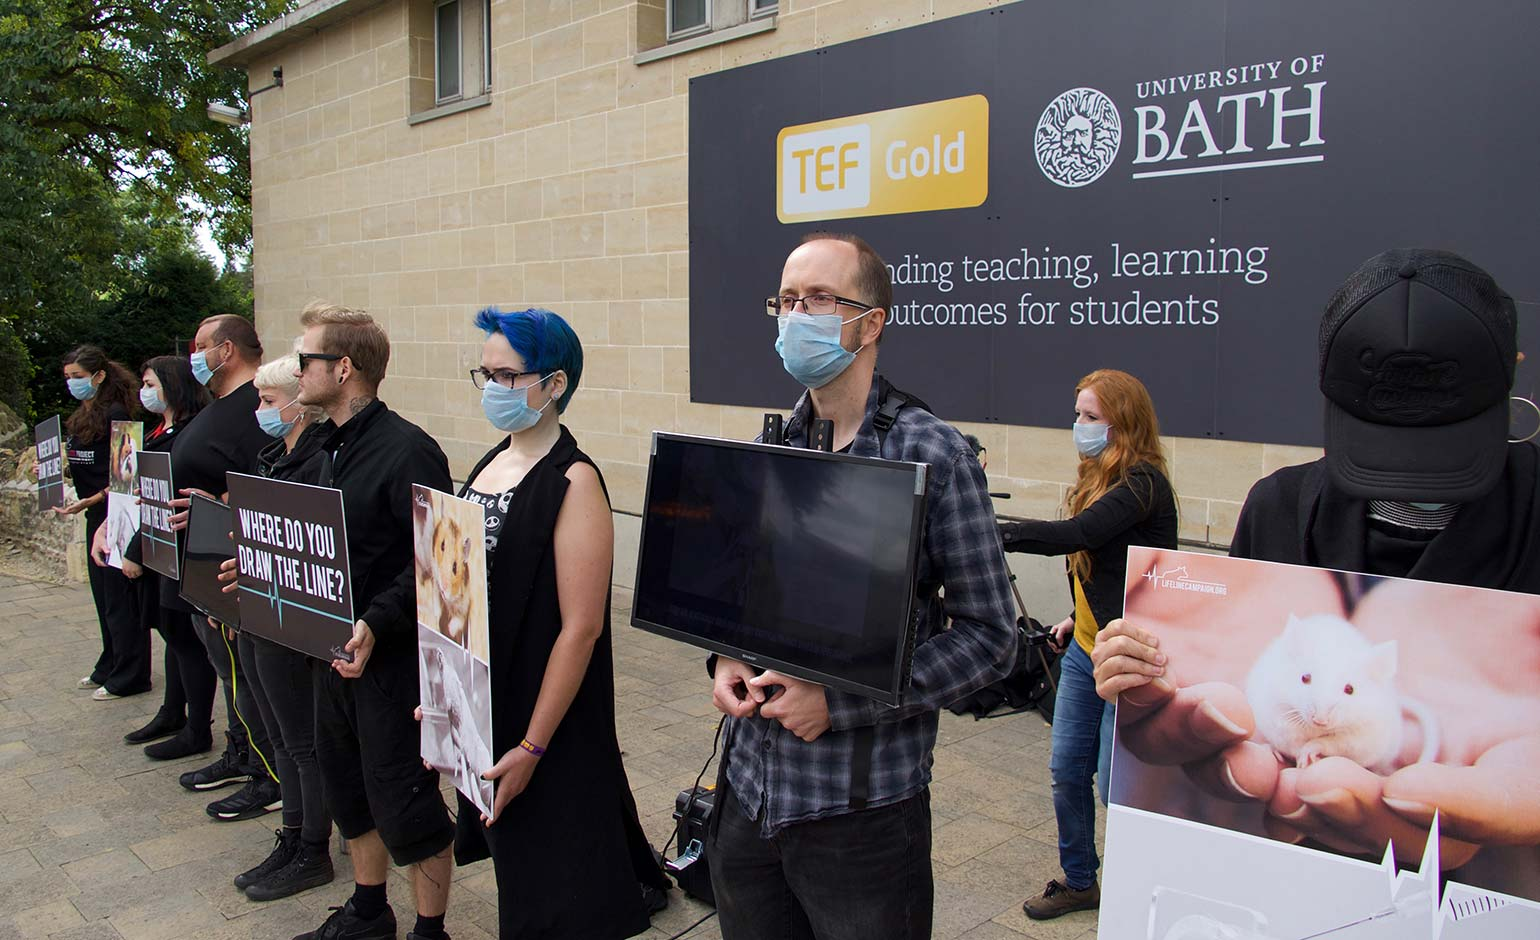 Animal justice campaigners protest at University of Bath Open Day event